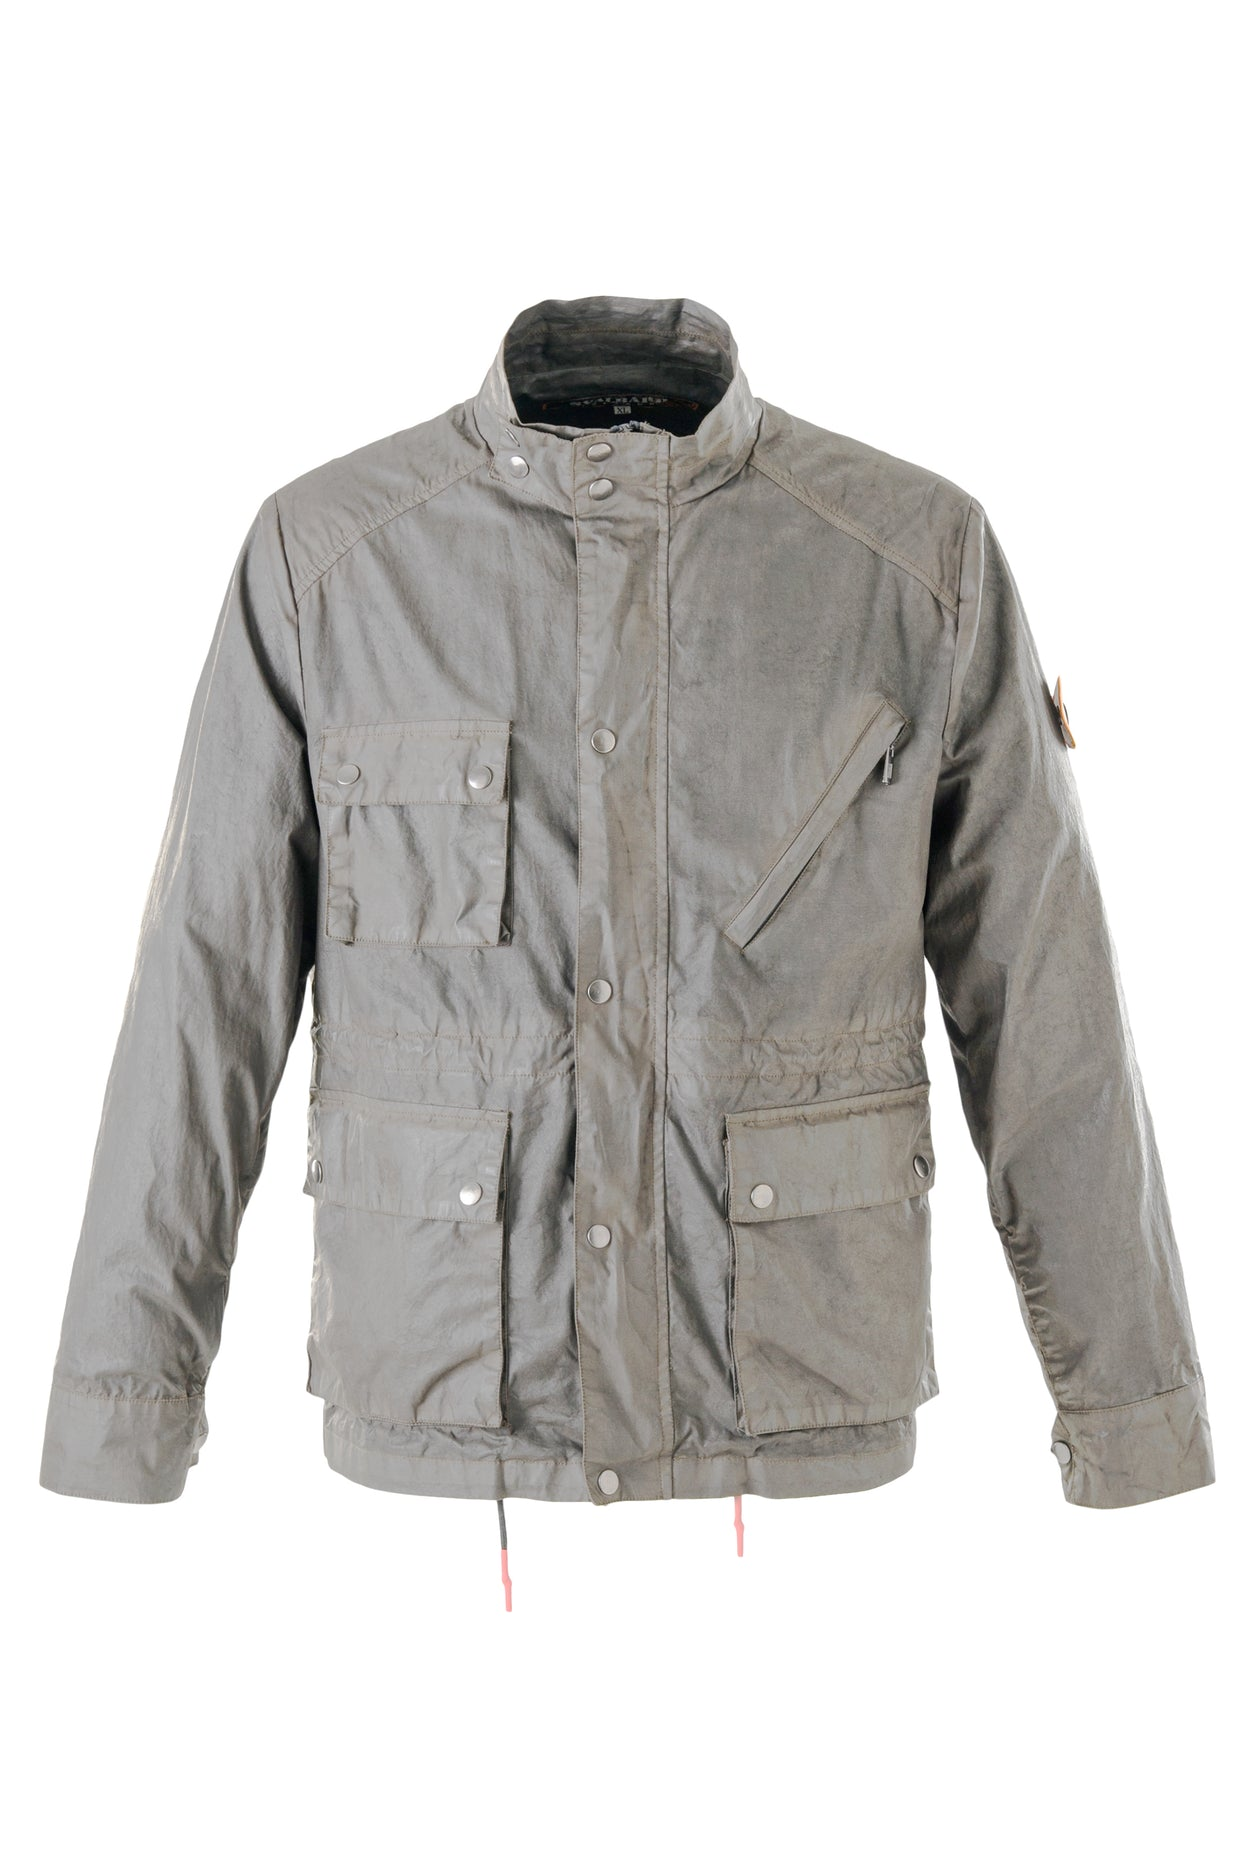 ODINO JACKET - Walnut Brown